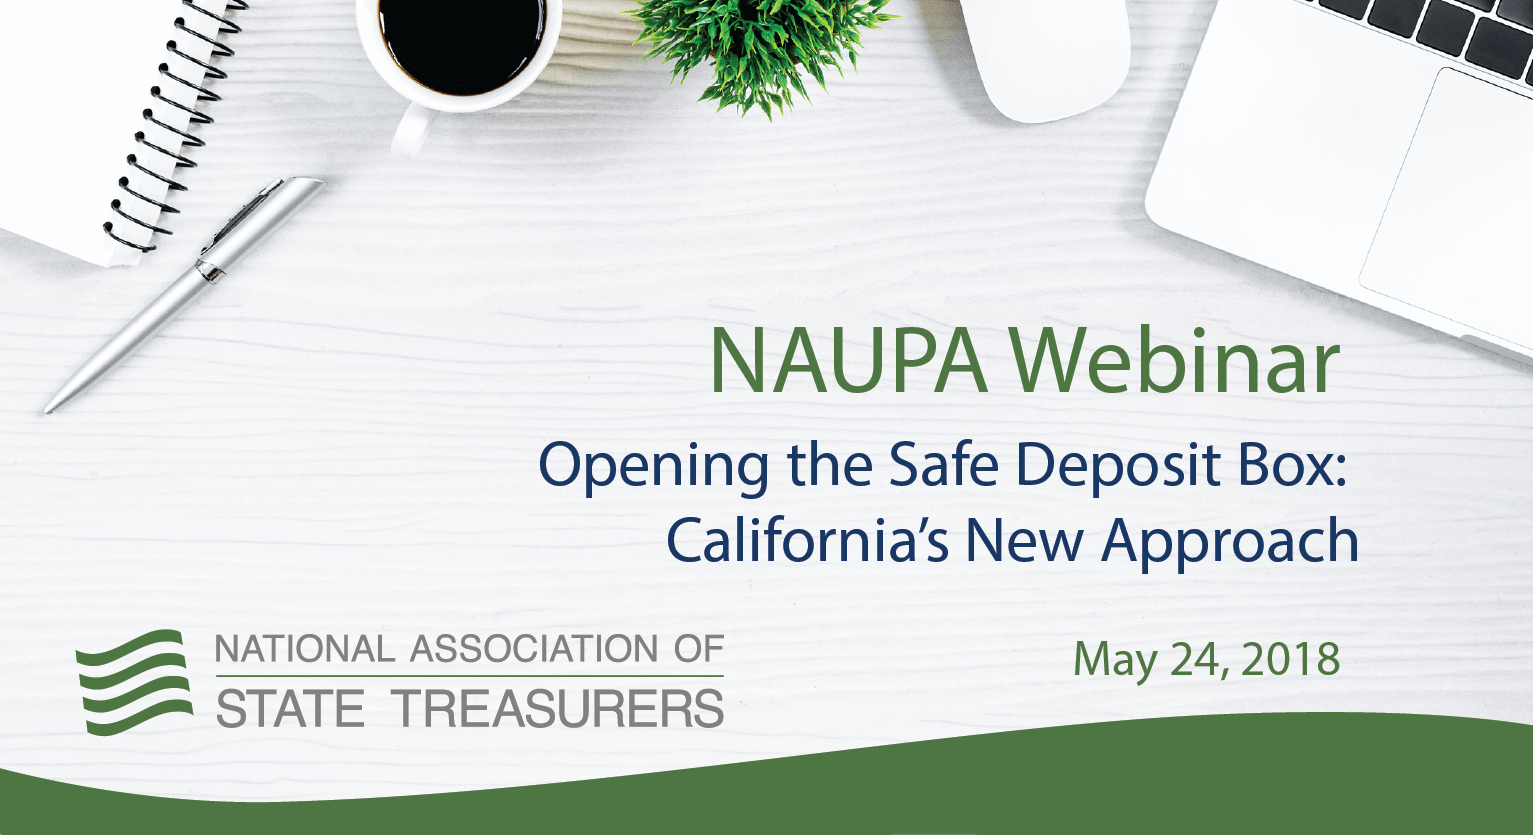 Opening the Safe Deposit Box: California's New Approach